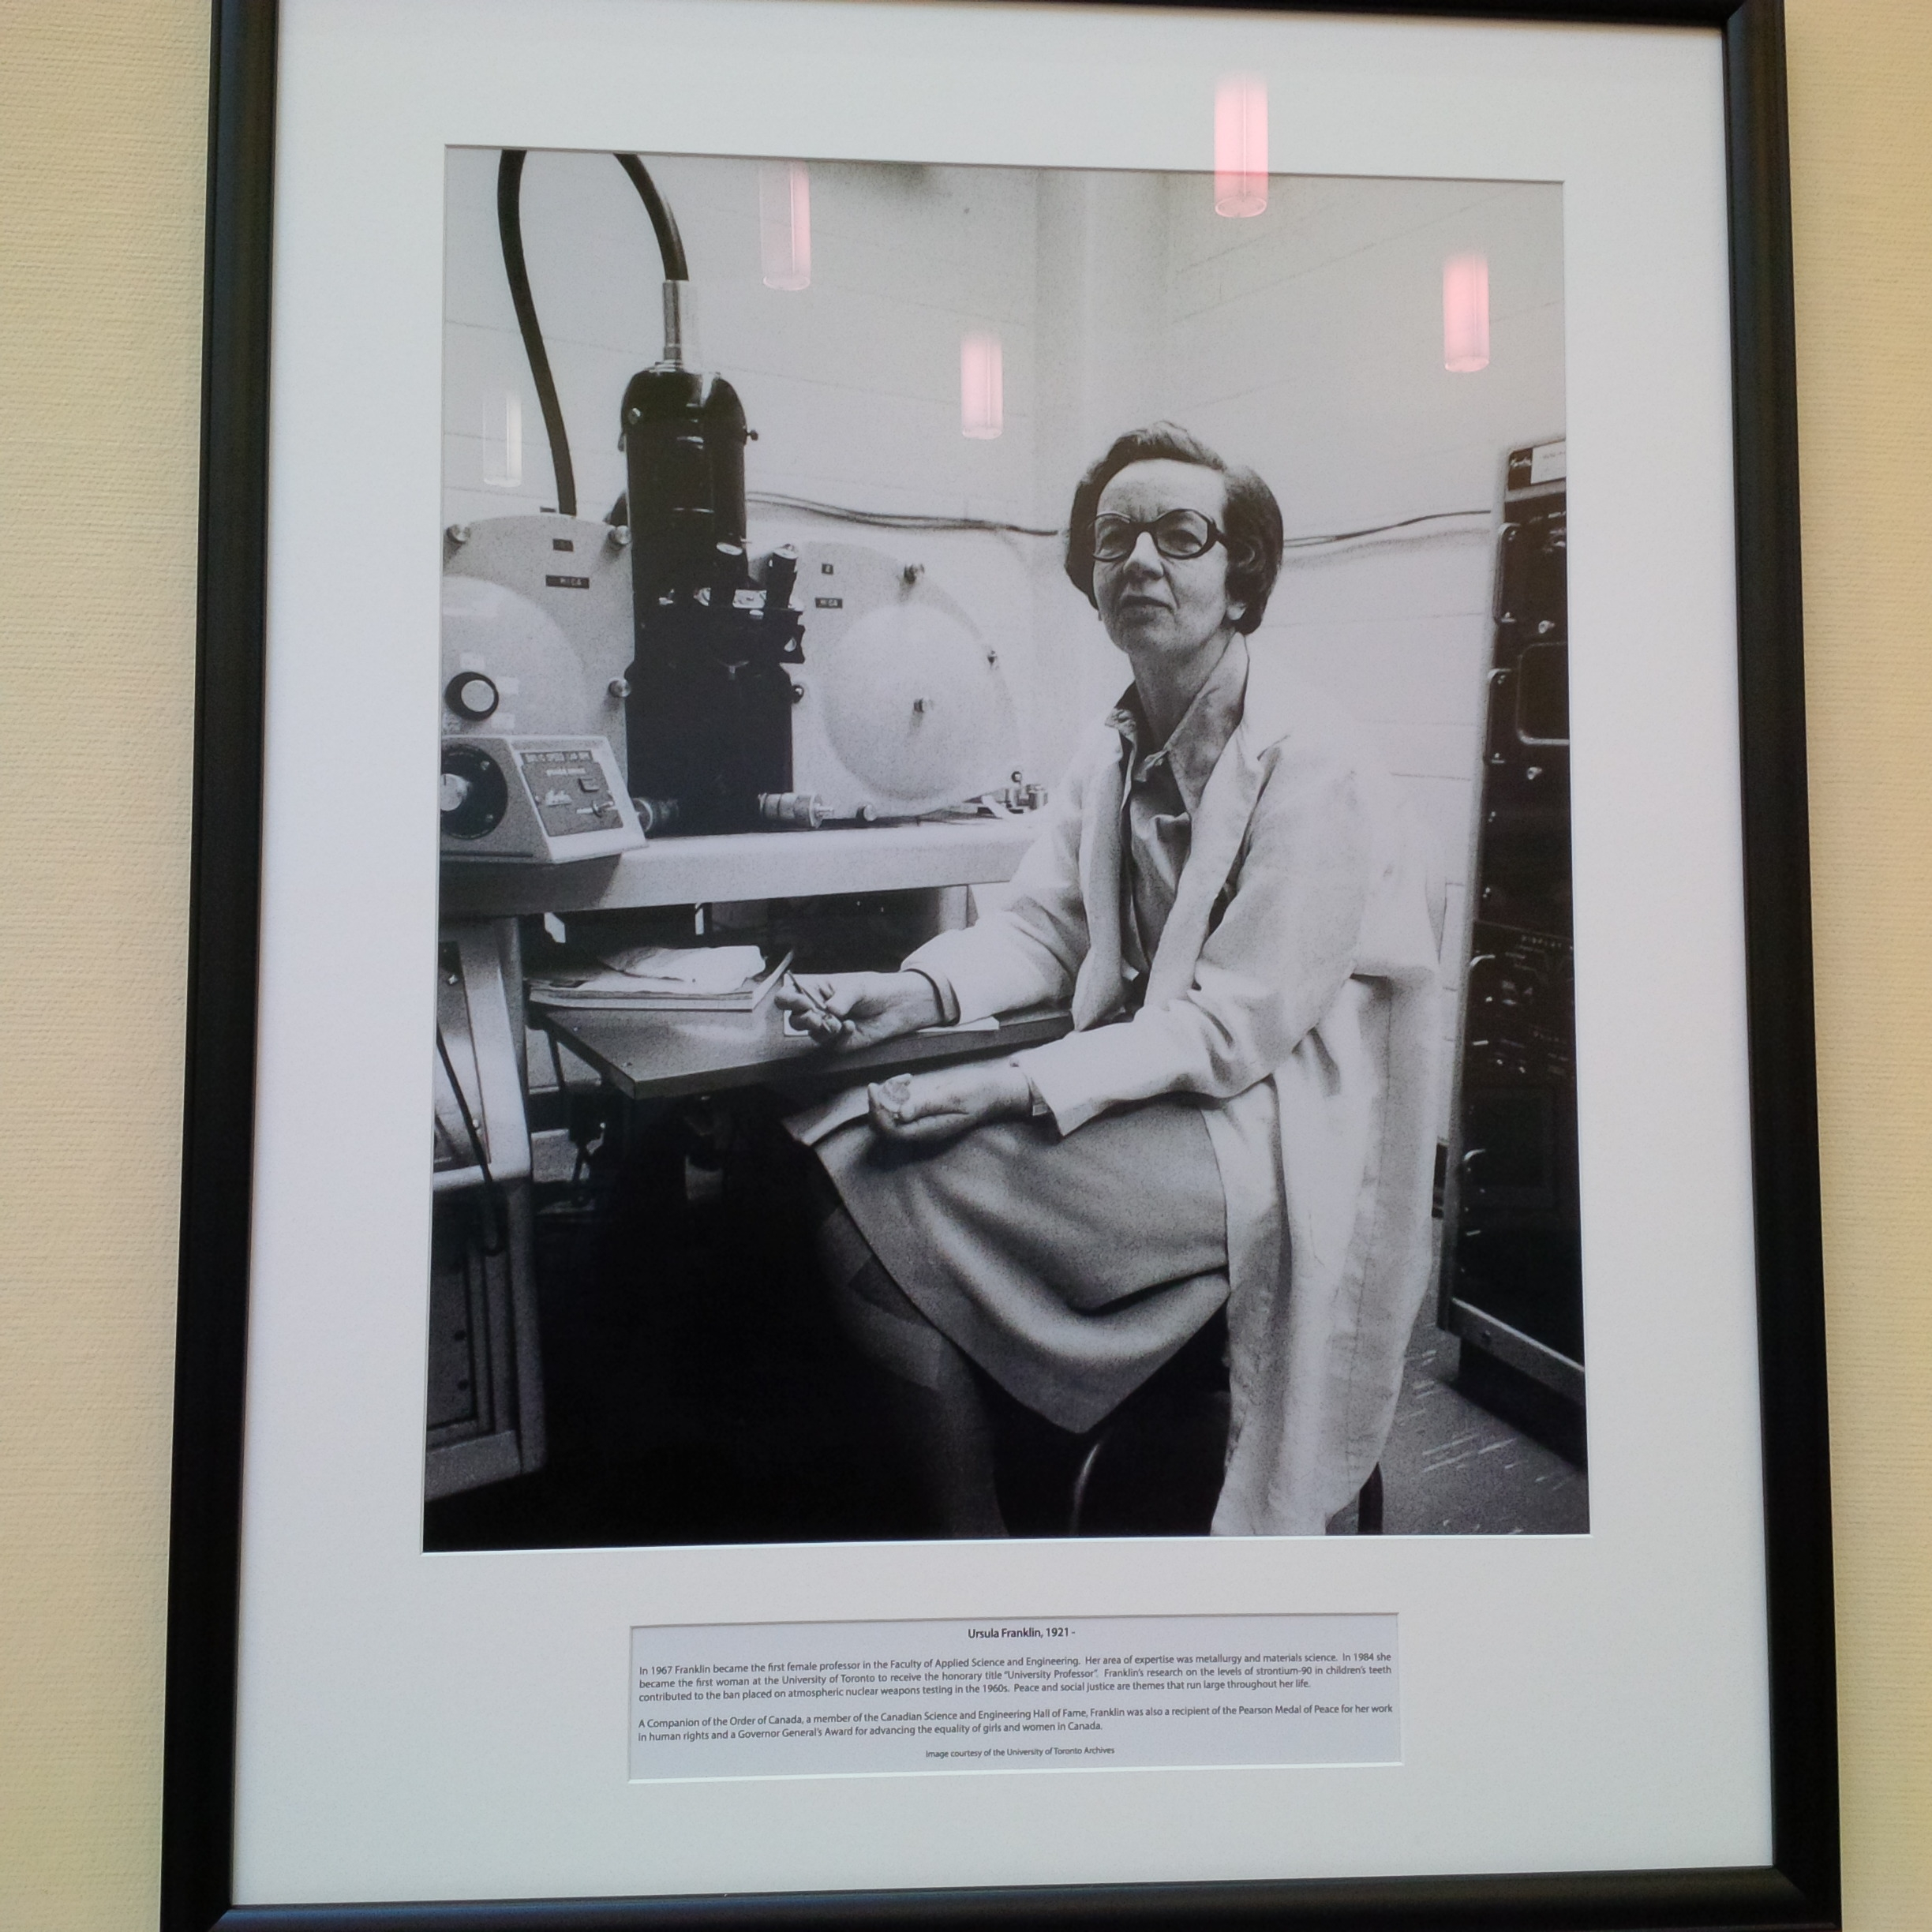 Framed black and white photo of lady scientis in lab coat - she is in front of a large lab machine